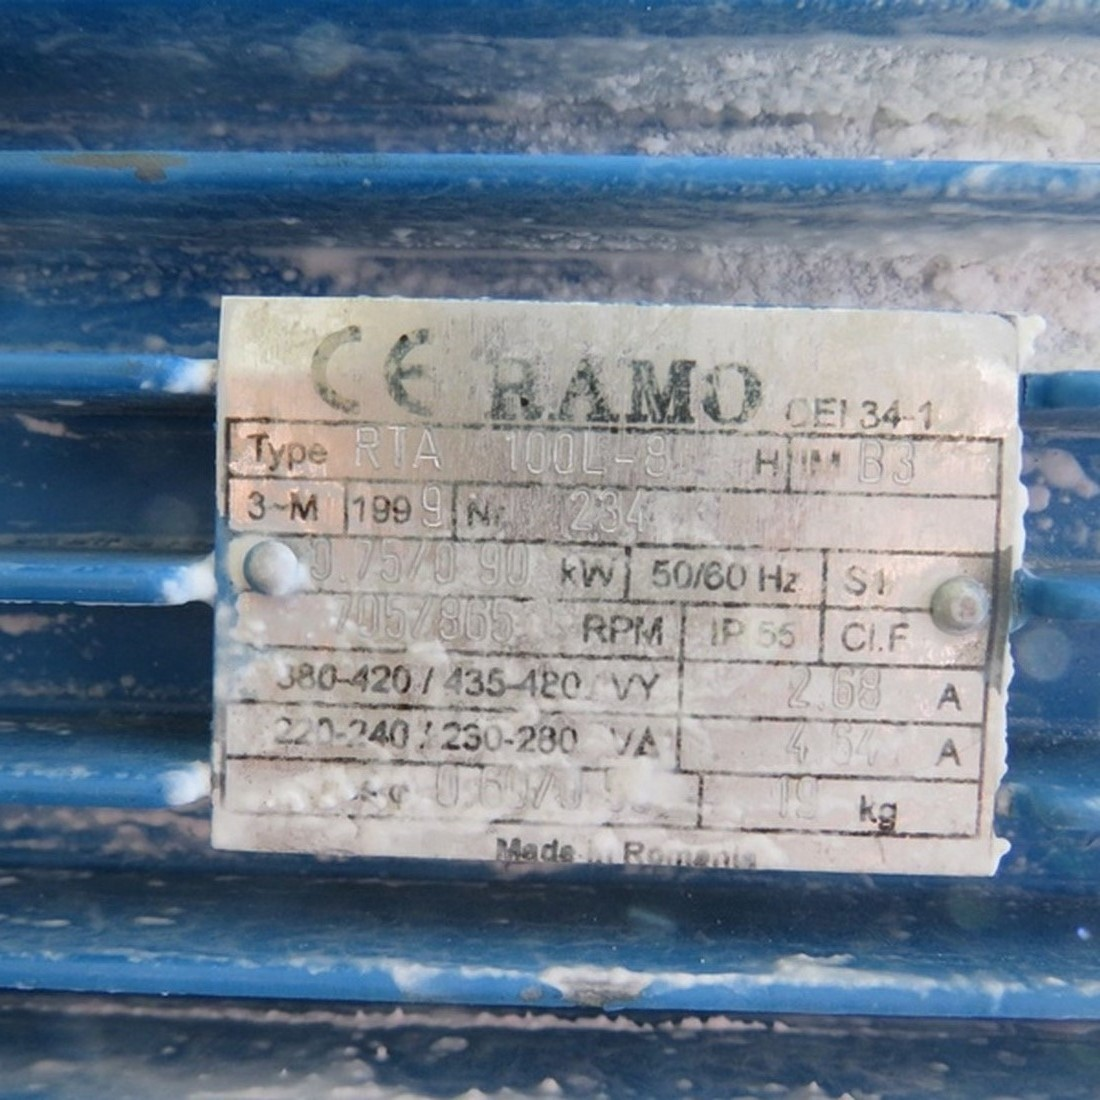 R6MA6119 Stainless steel electric melter